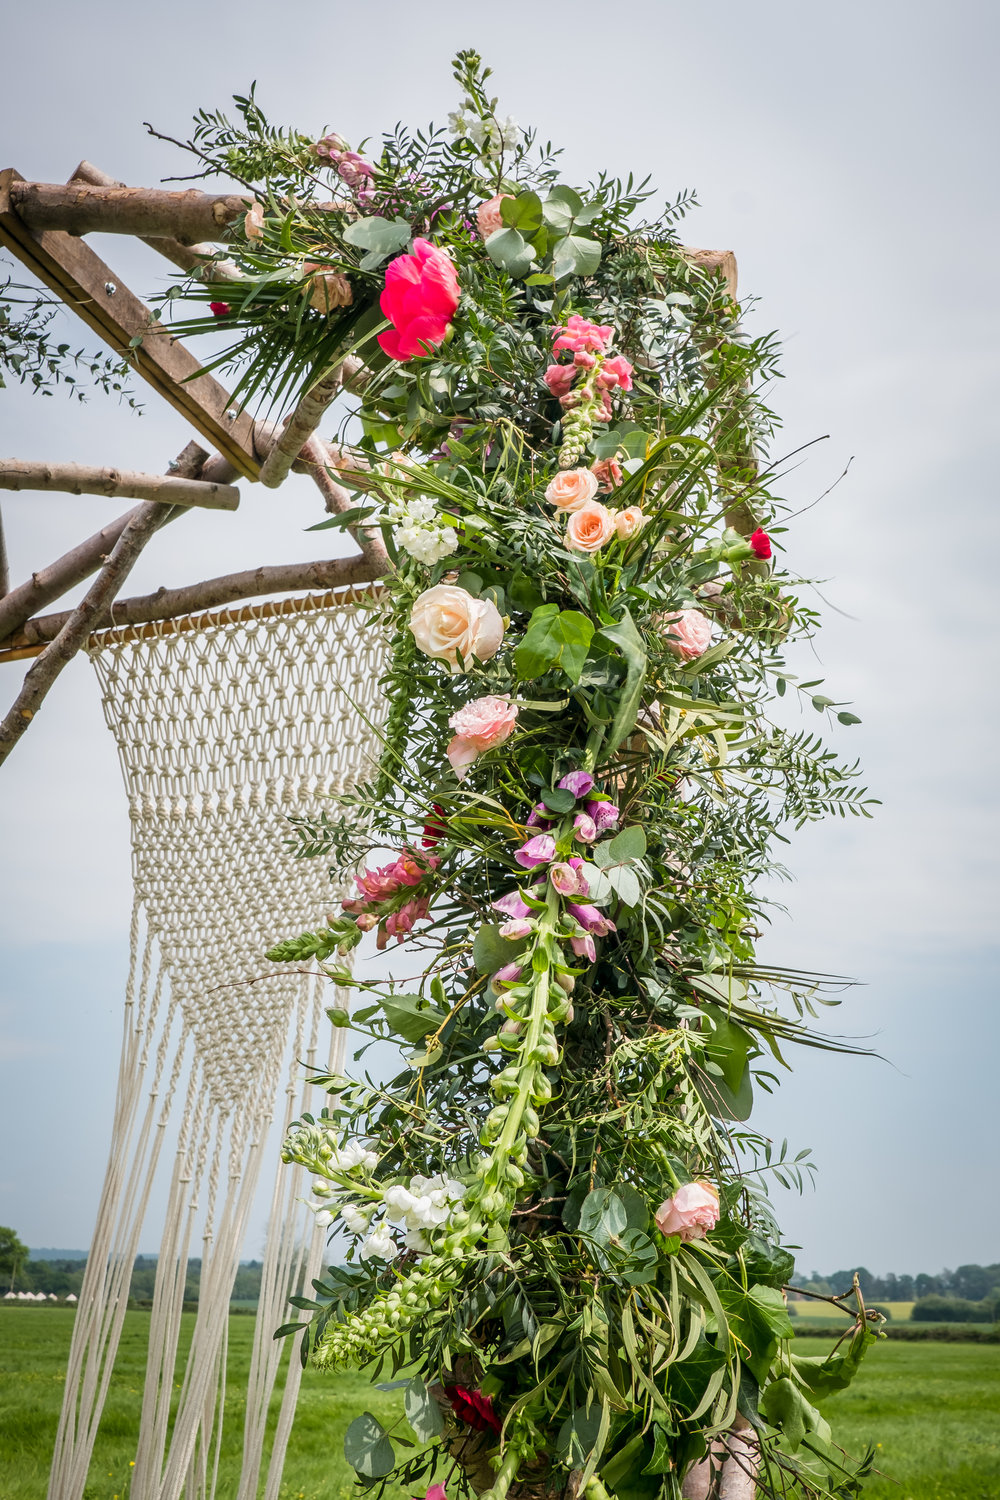 Webb-and-Farrer-Wedding-Flowers-Sussex-5-ideas-for-an-outdoor-wedding (25).jpg